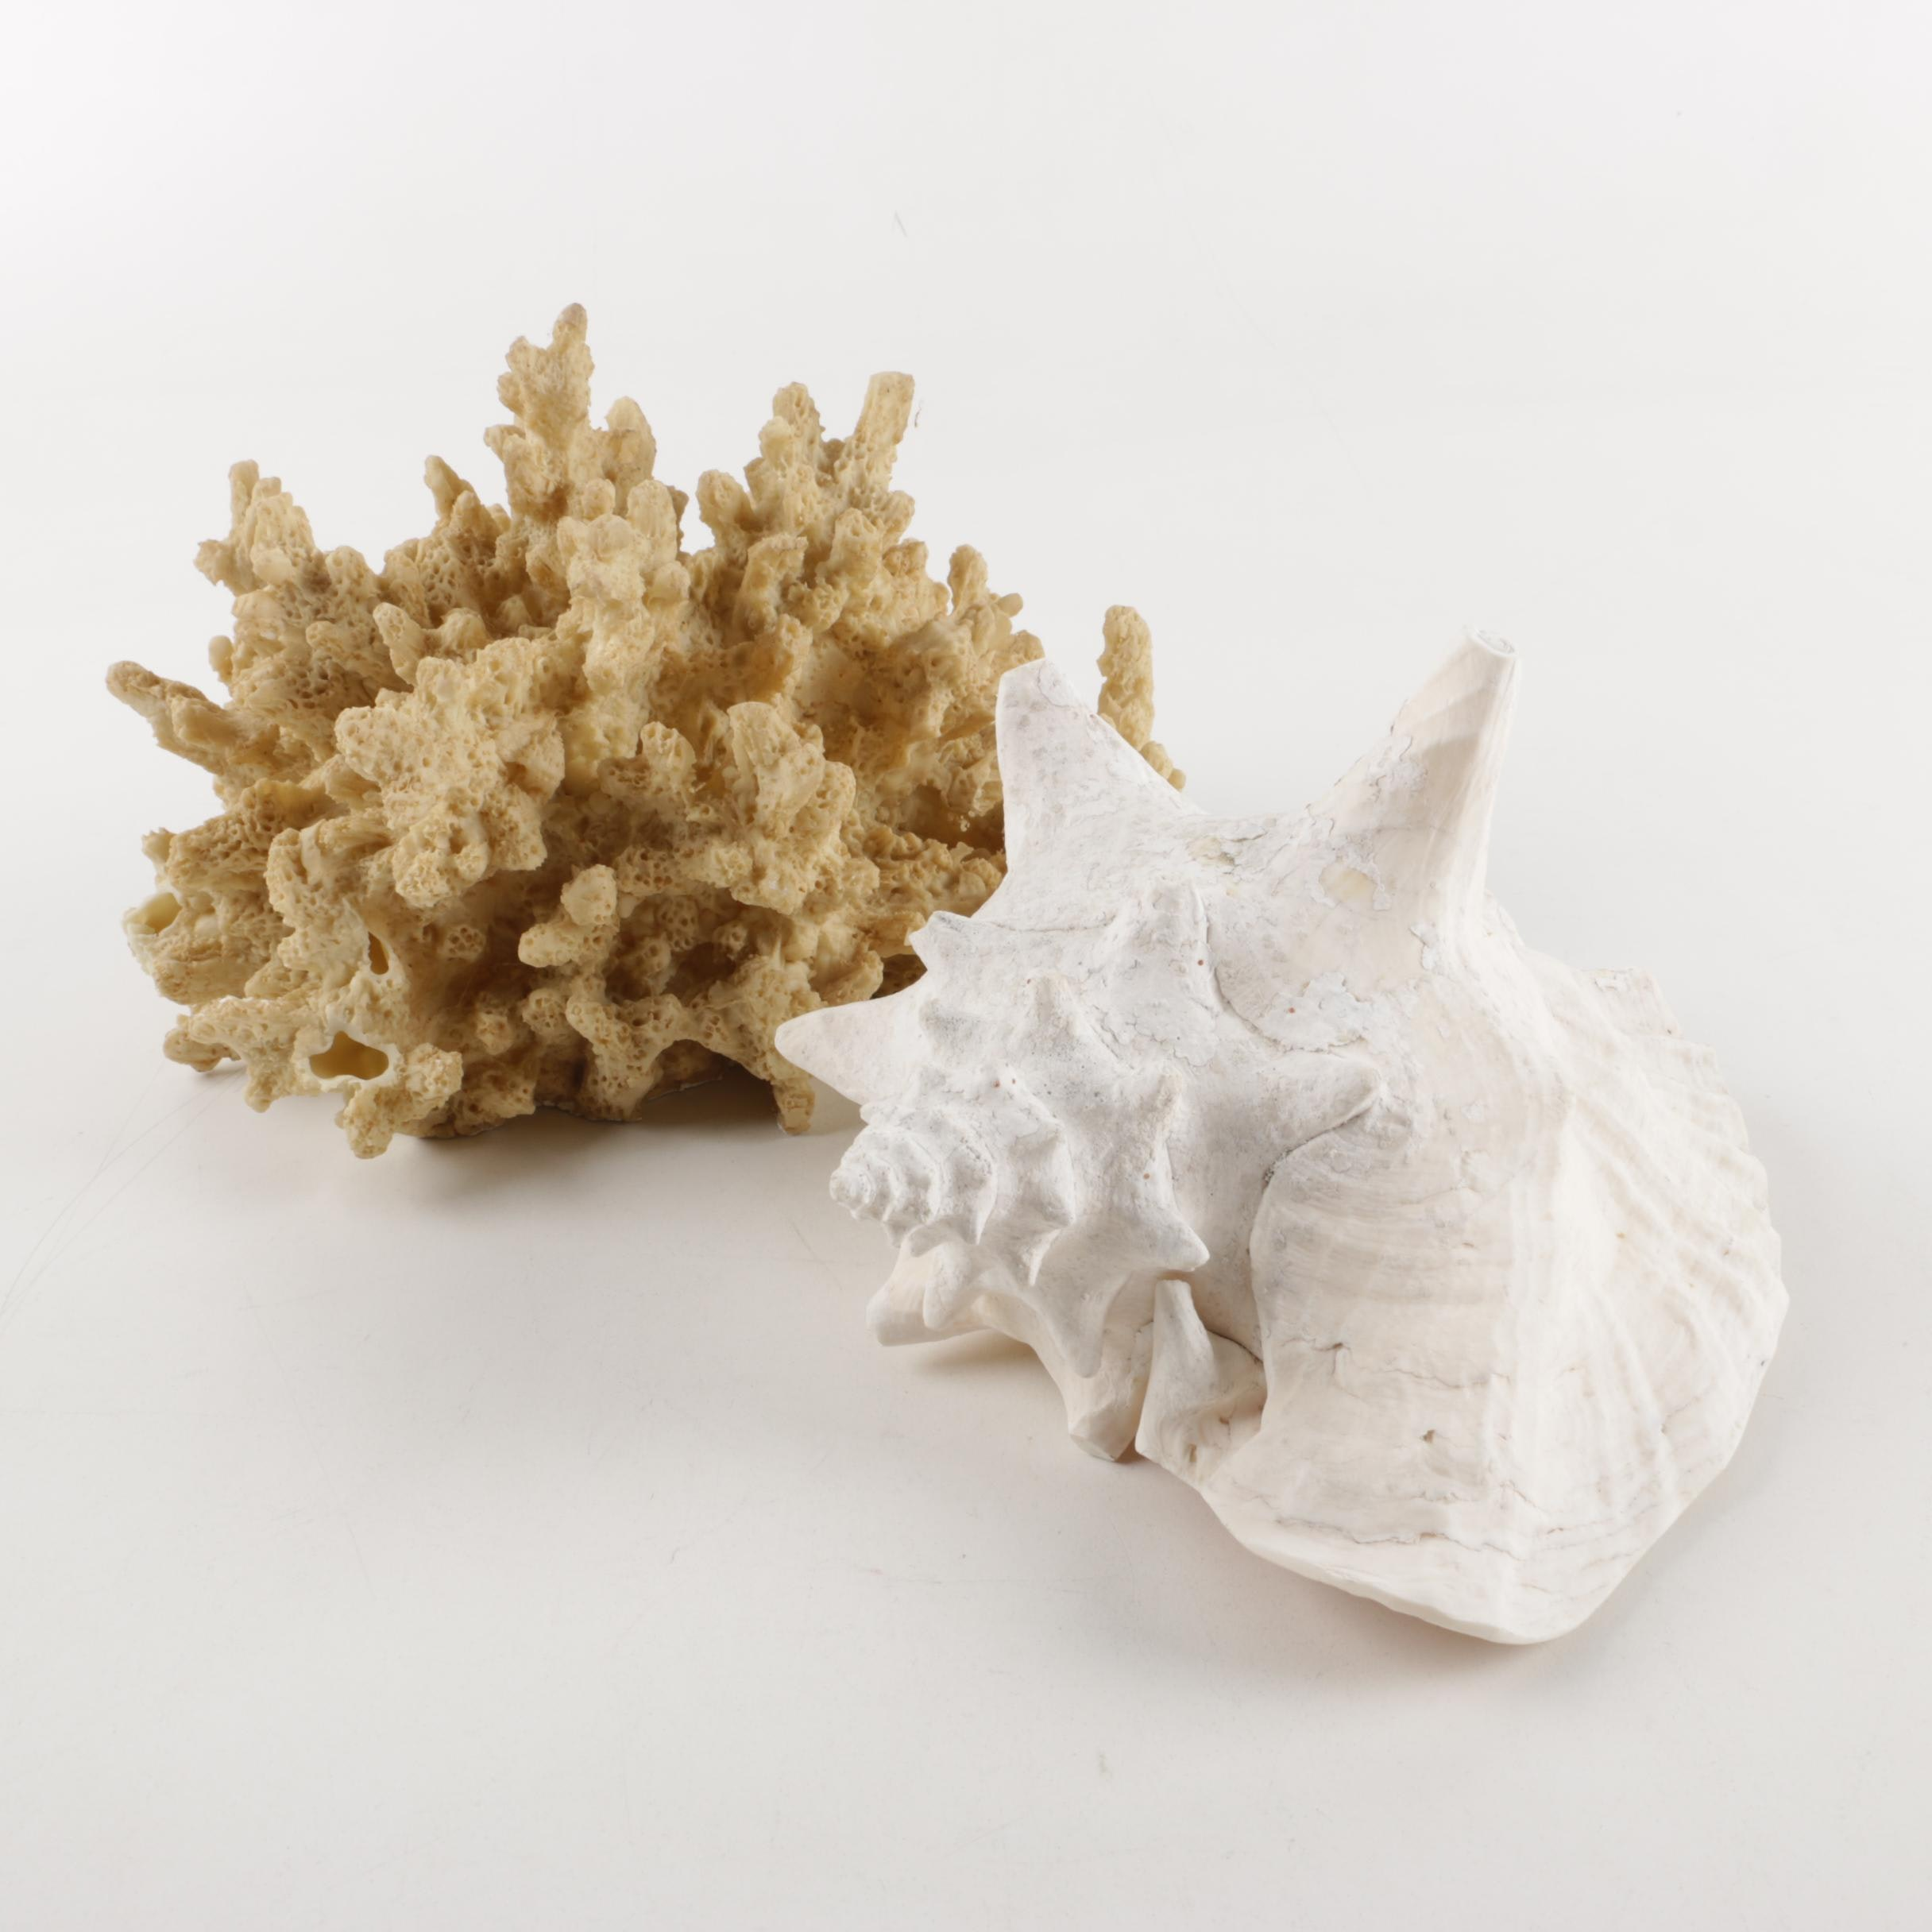 Decorative Porcelain Coral and Shell Sculptures